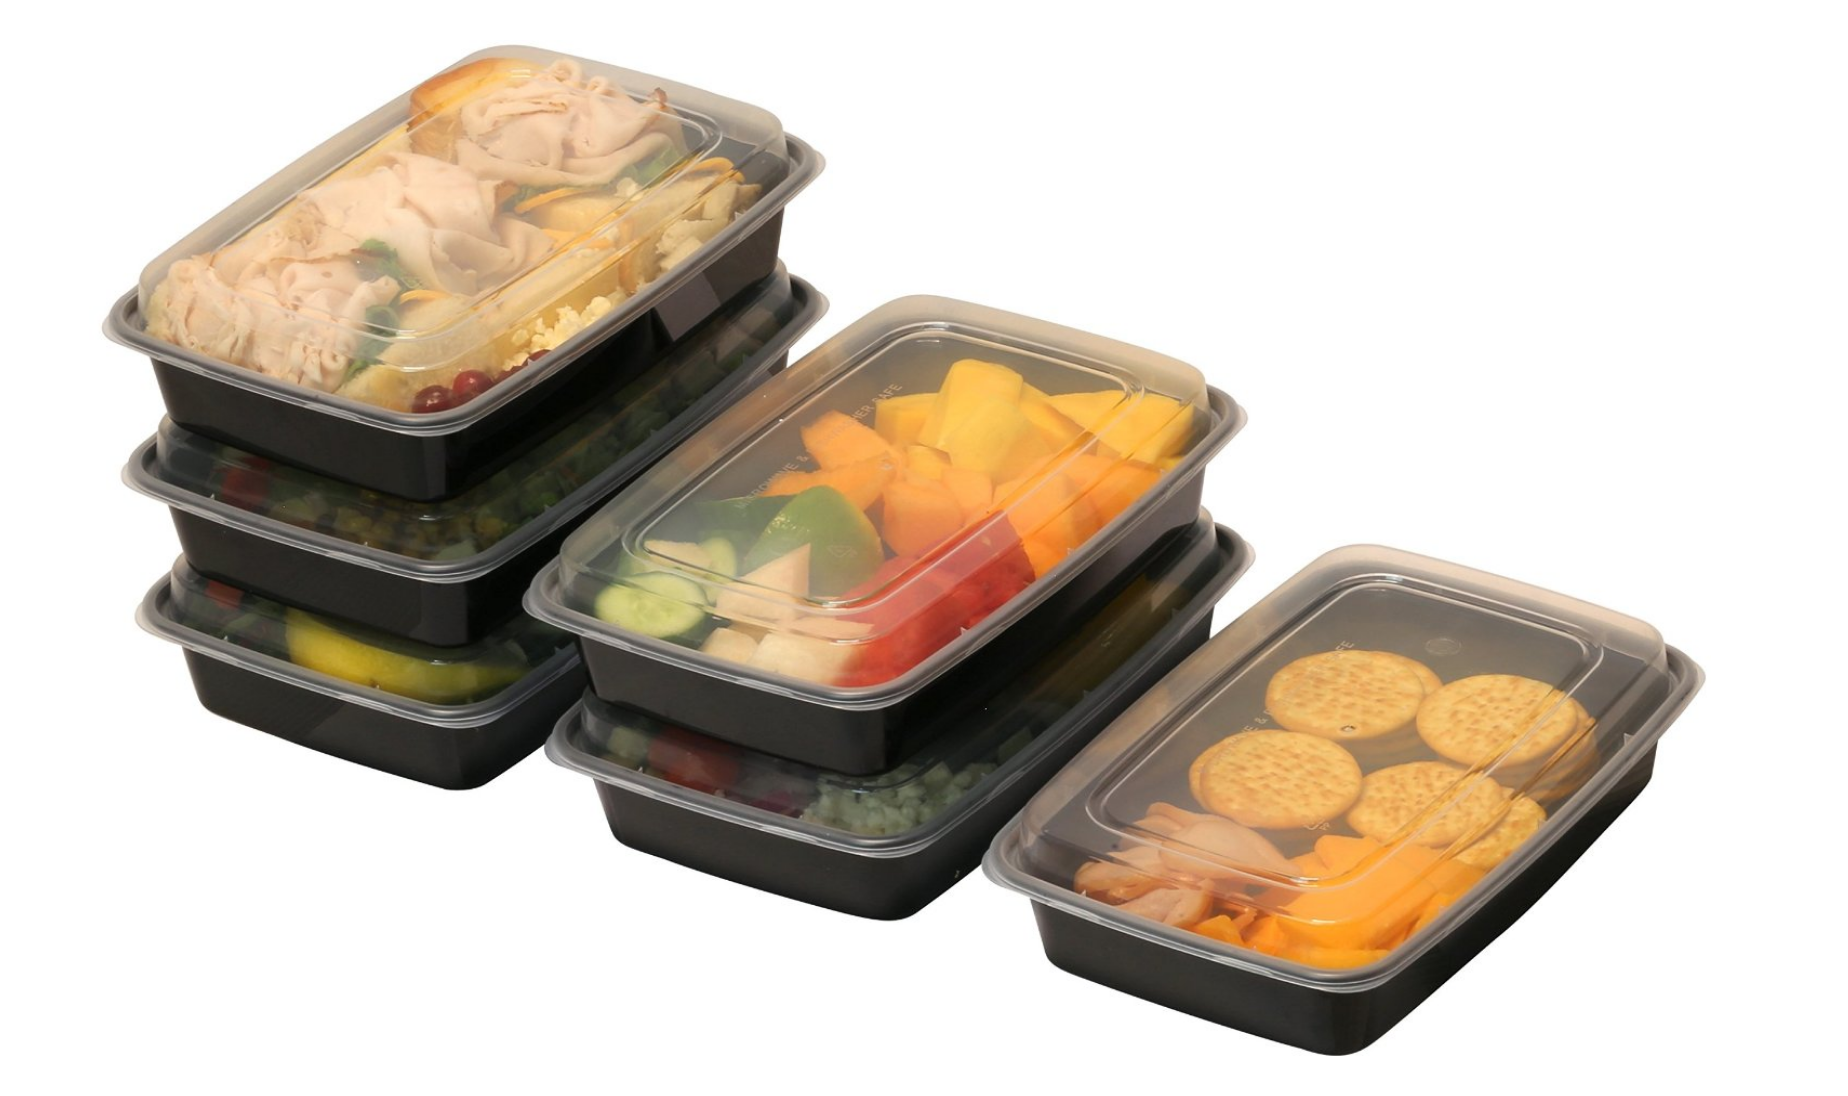 We're looking into the 28 to 32 oz range for optimal food storage! [boxes by Simple Houseware]